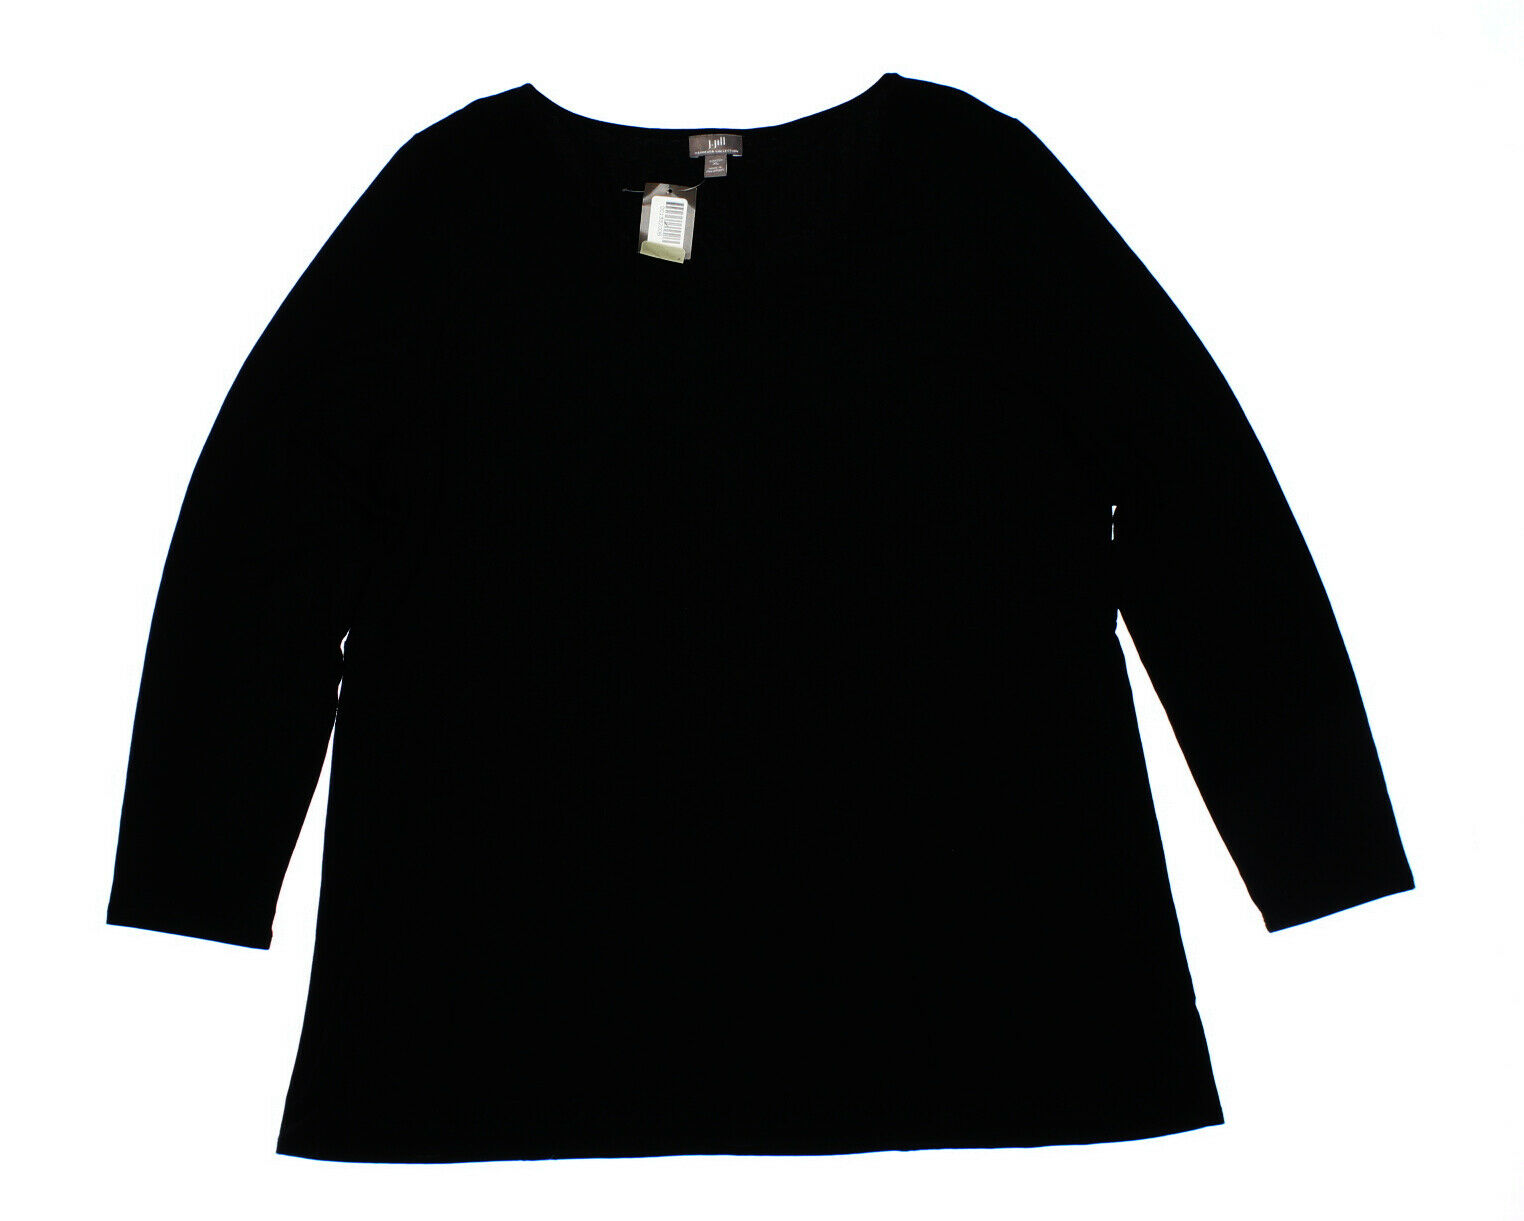 NWT - J. JILL Woherren 'WEAREVER COLLECTION' schwarz L S STRETCH TOP  -  XL